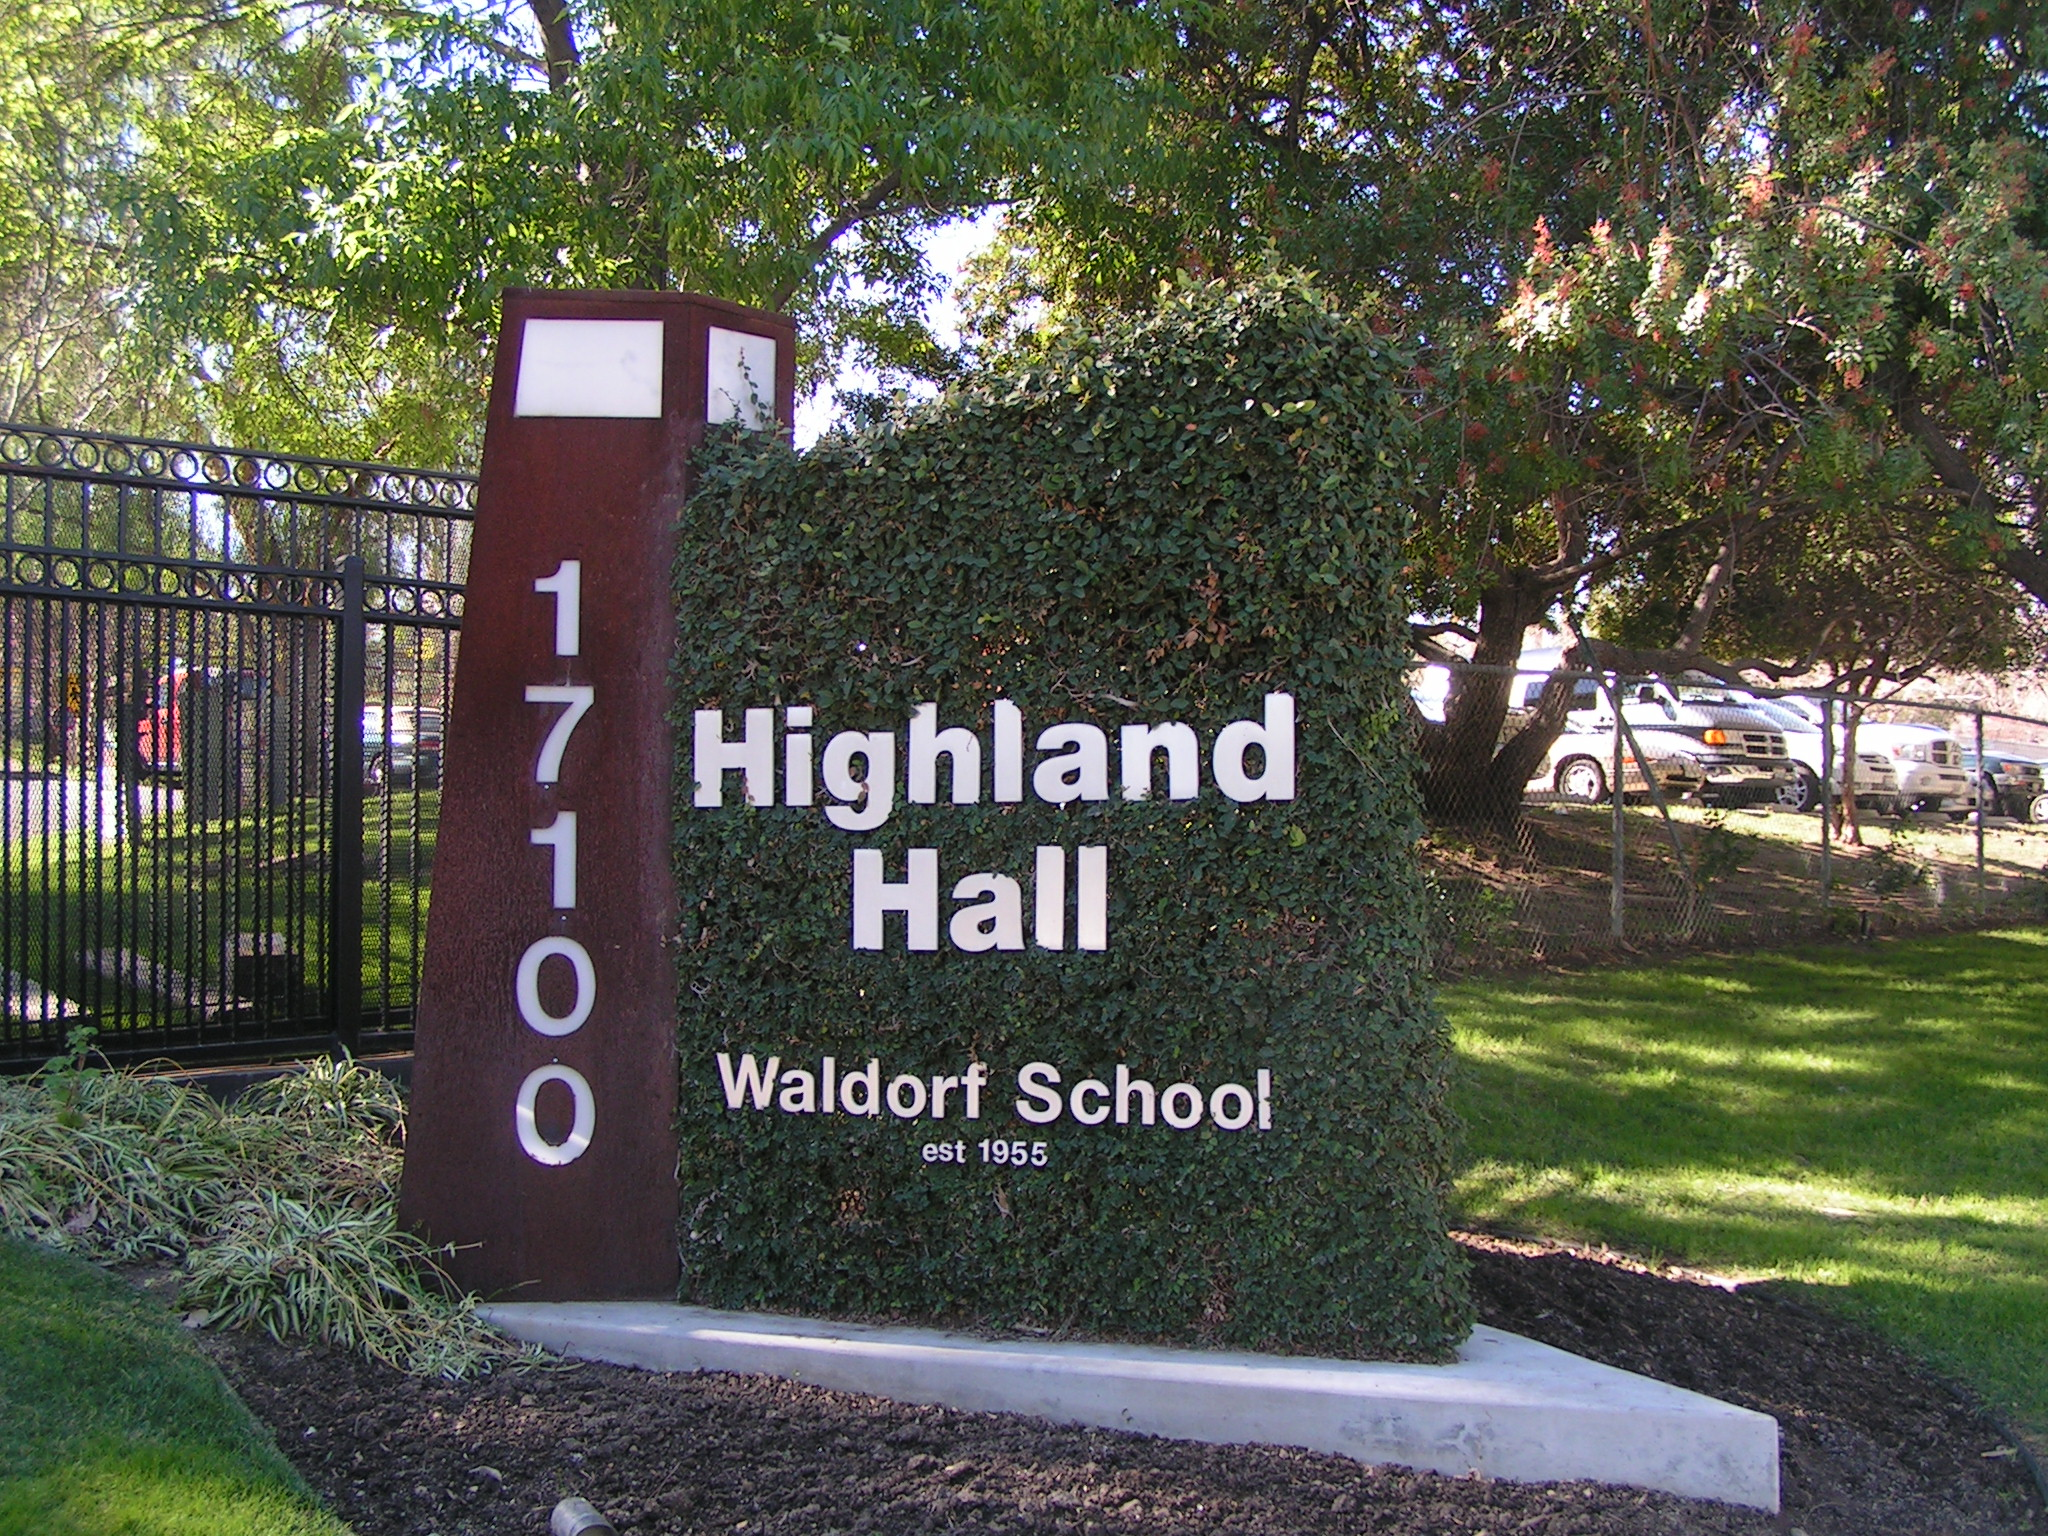 THPT Highland Hall Waldorf